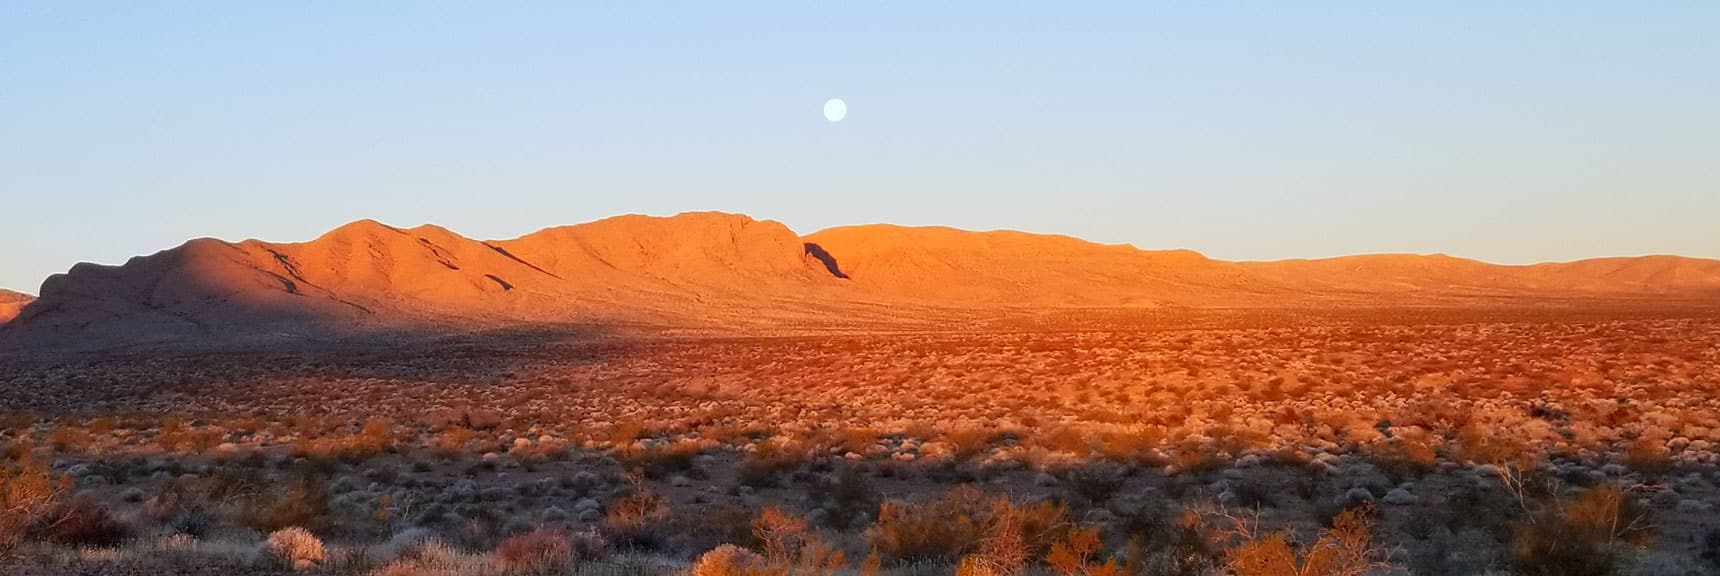 Moonset Seen From the Trailhead for Prospect Trail in Valley of Fire State Park, Nevada